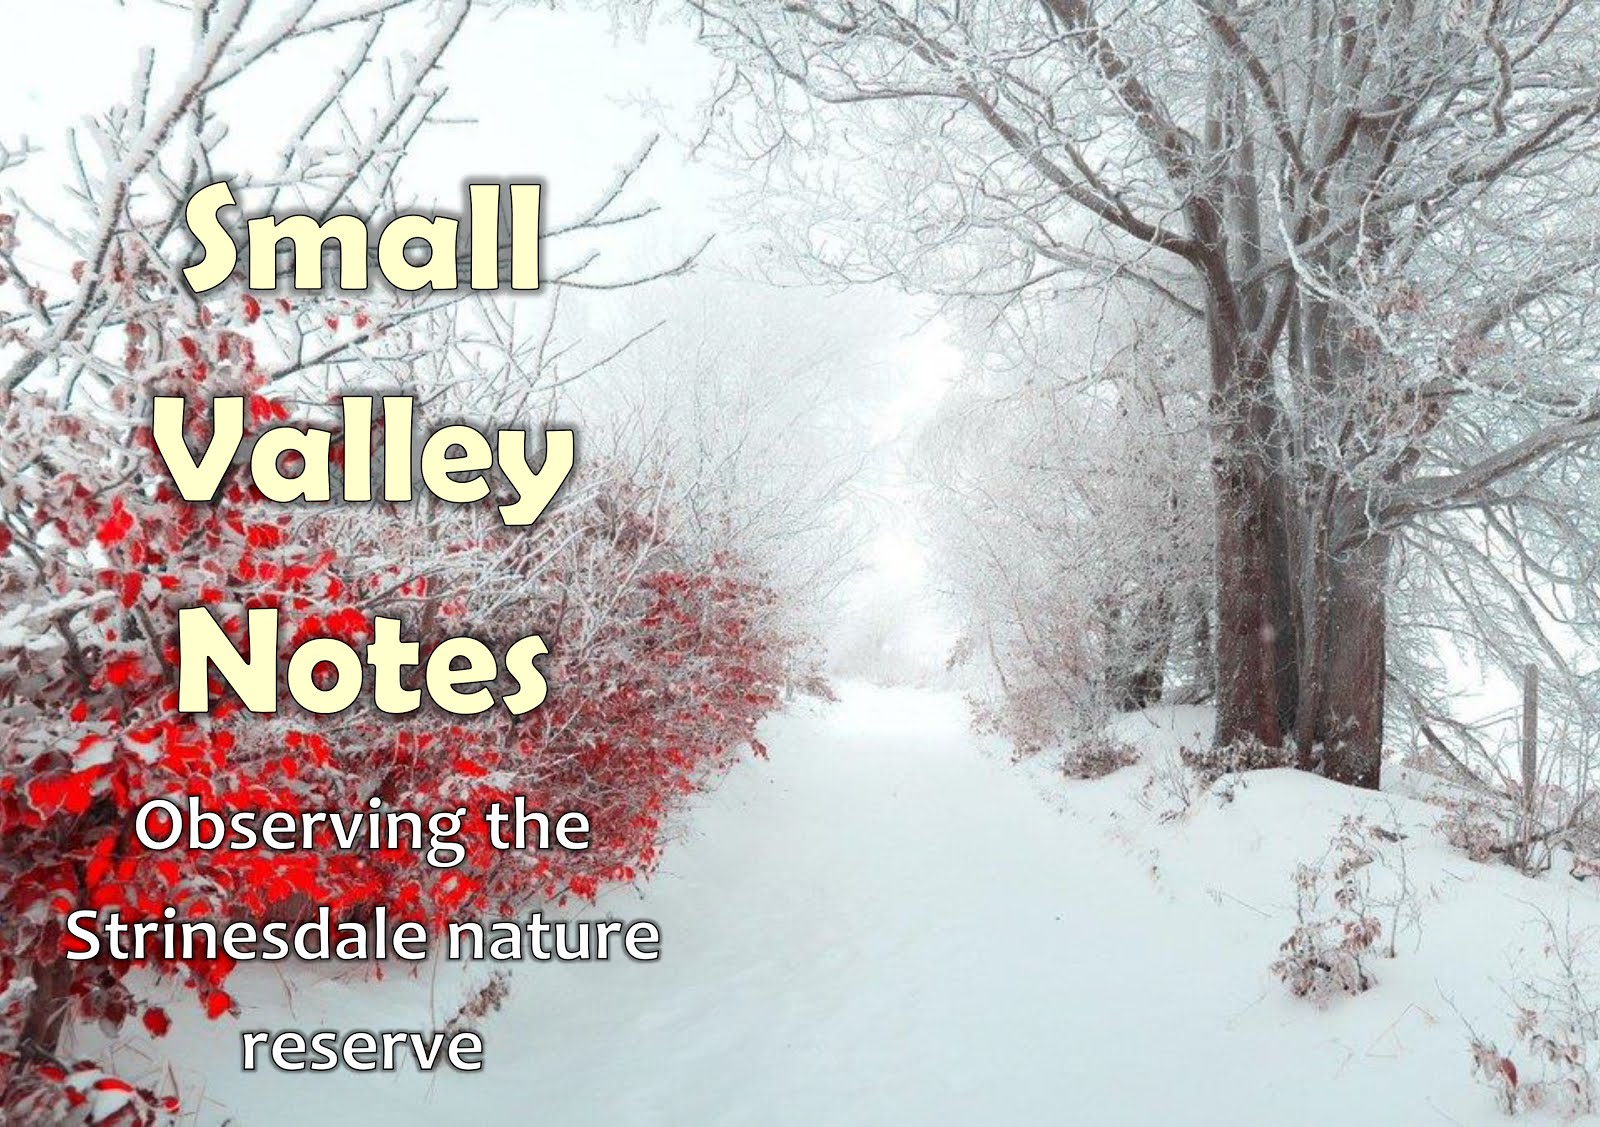 Small Valley Notes